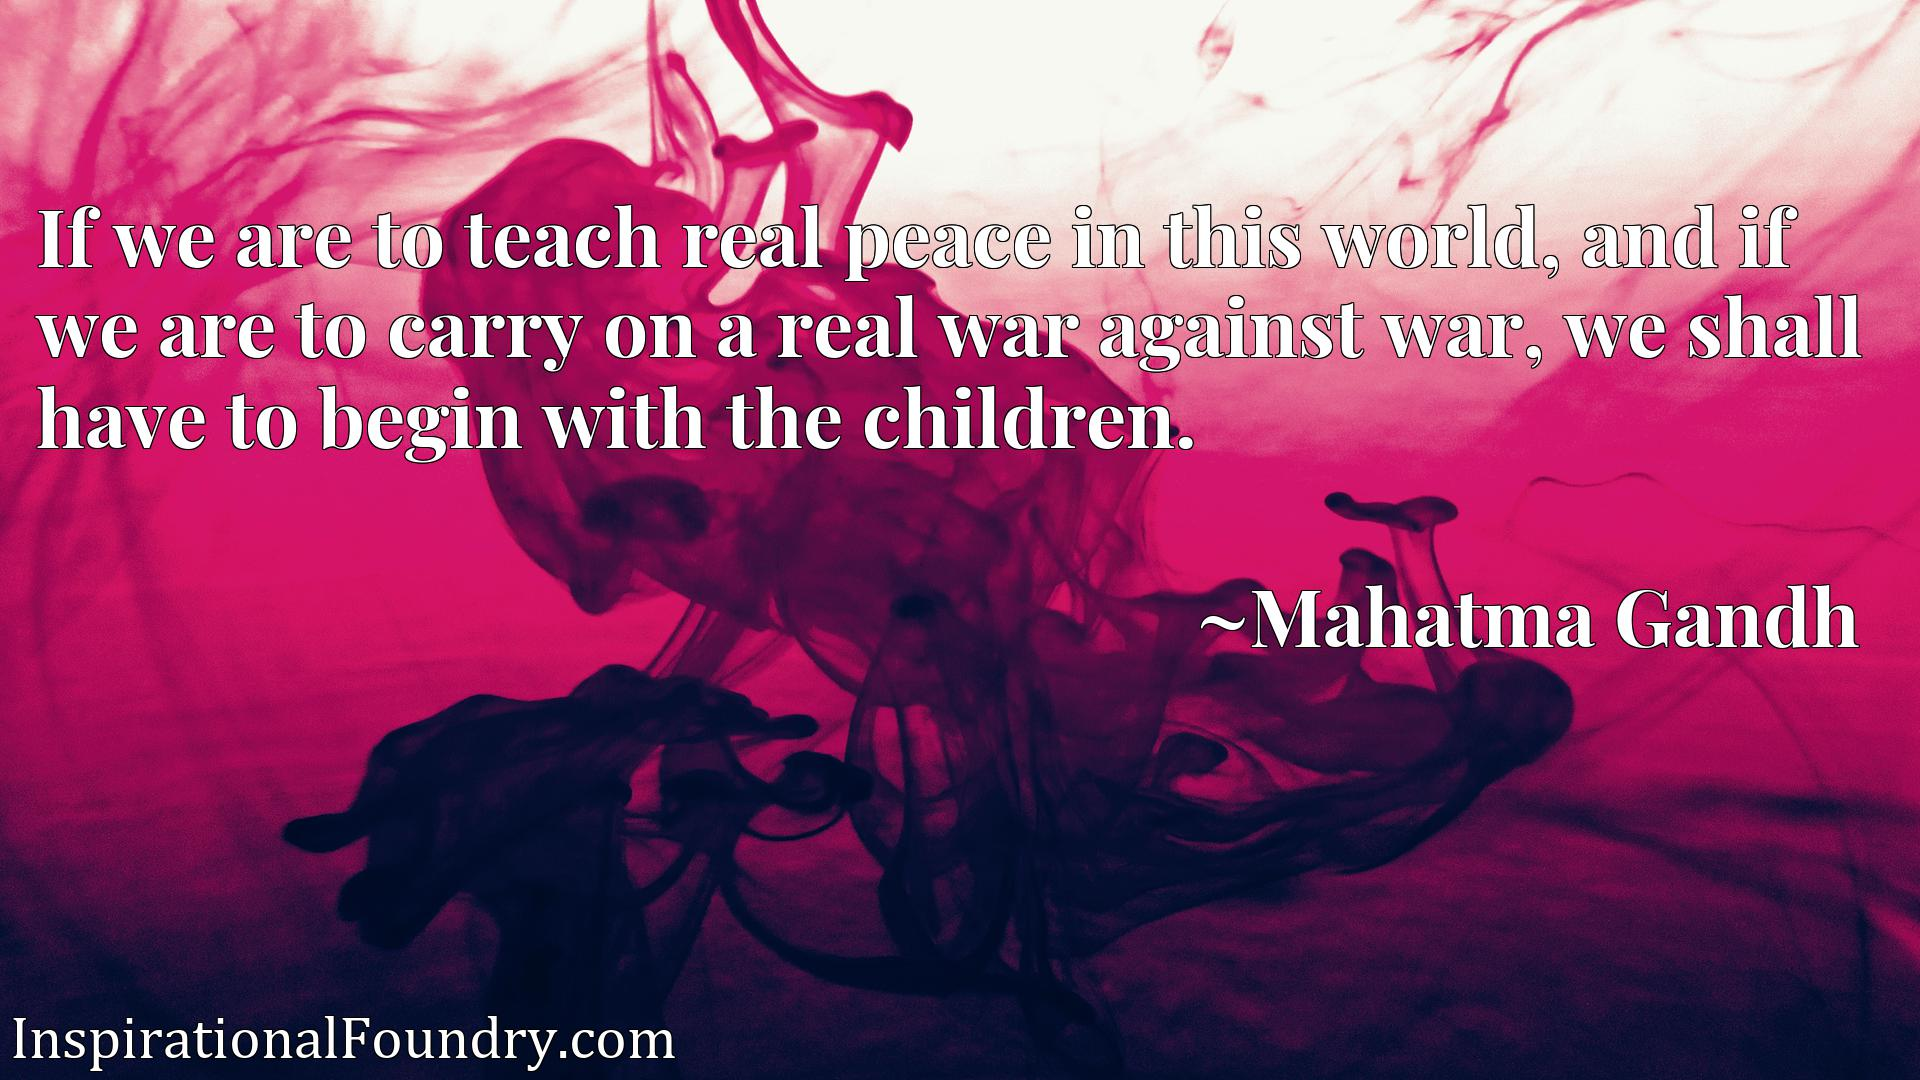 Quote Picture :If we are to teach real peace in this world, and if we are to carry on a real war against war, we shall have to begin with the children.